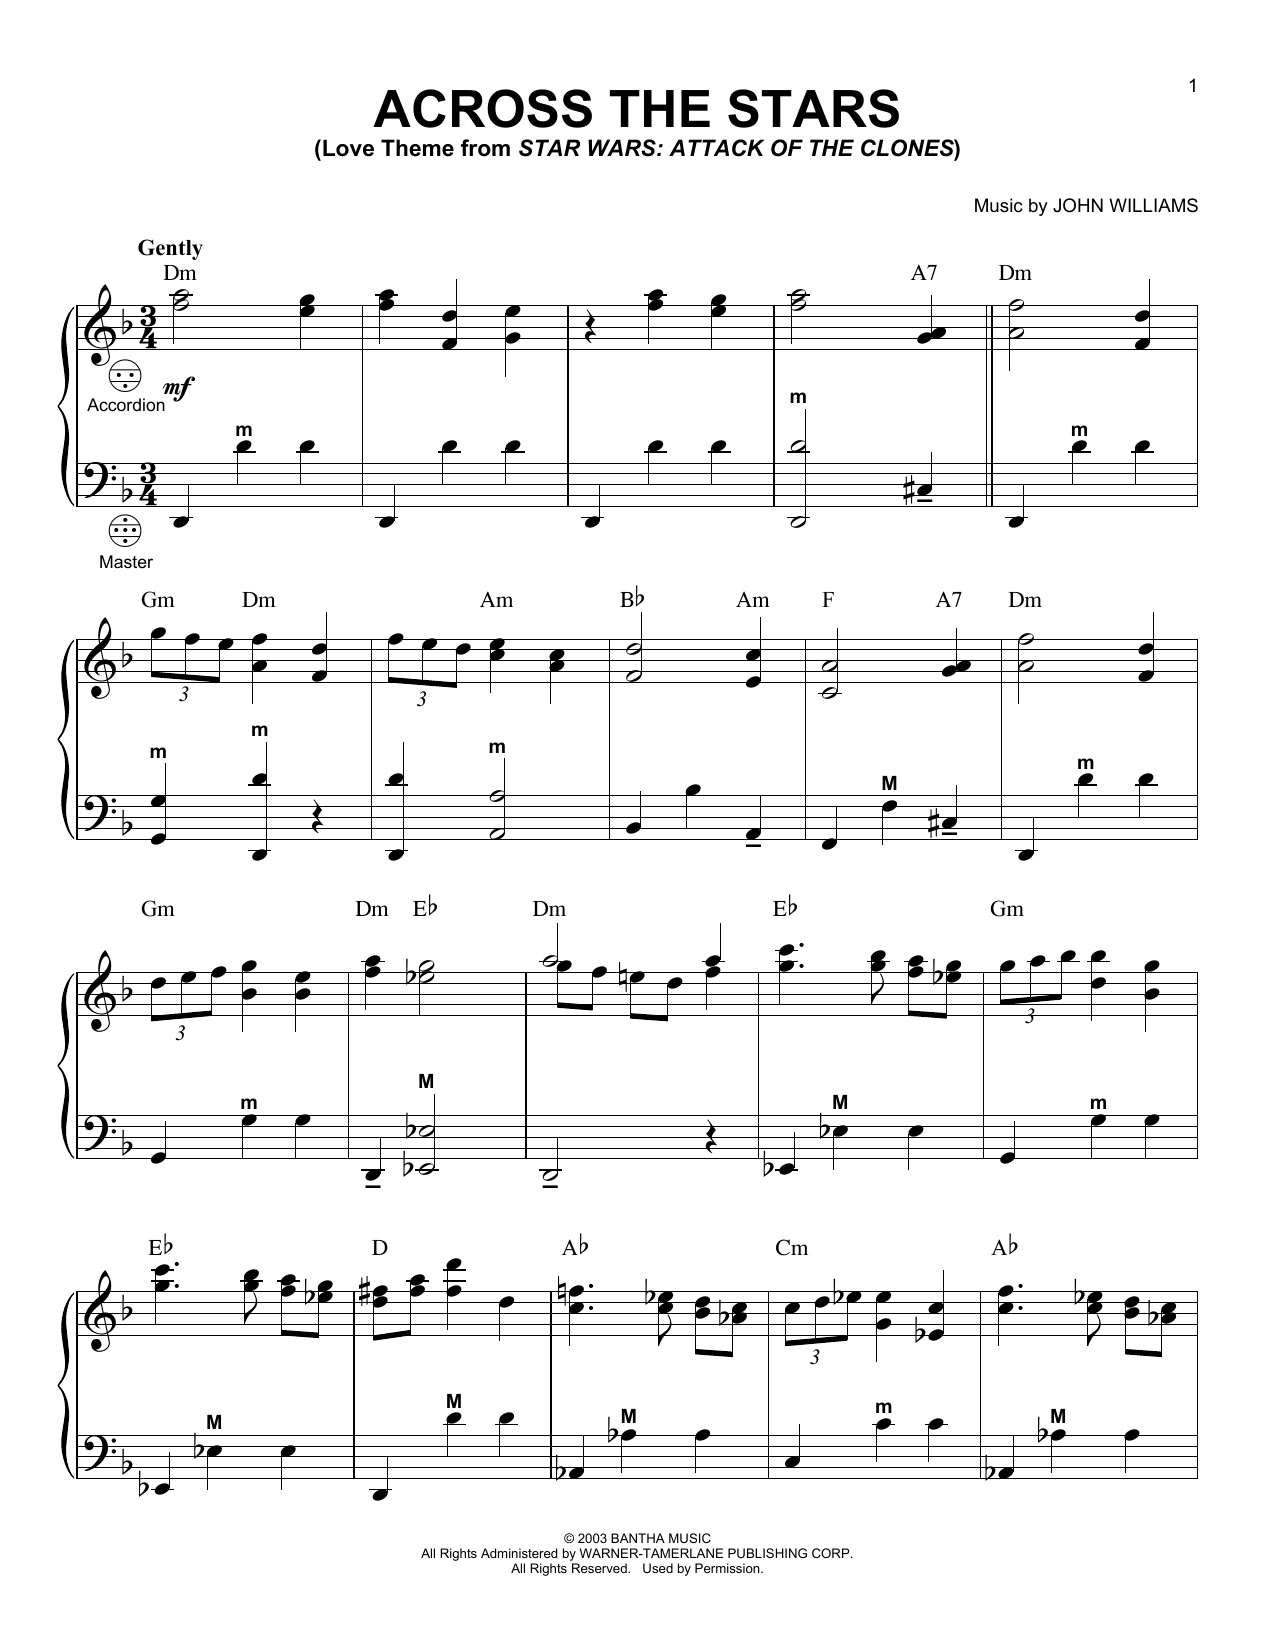 Sheet Music Digital Files To Print - Licensed Accordion